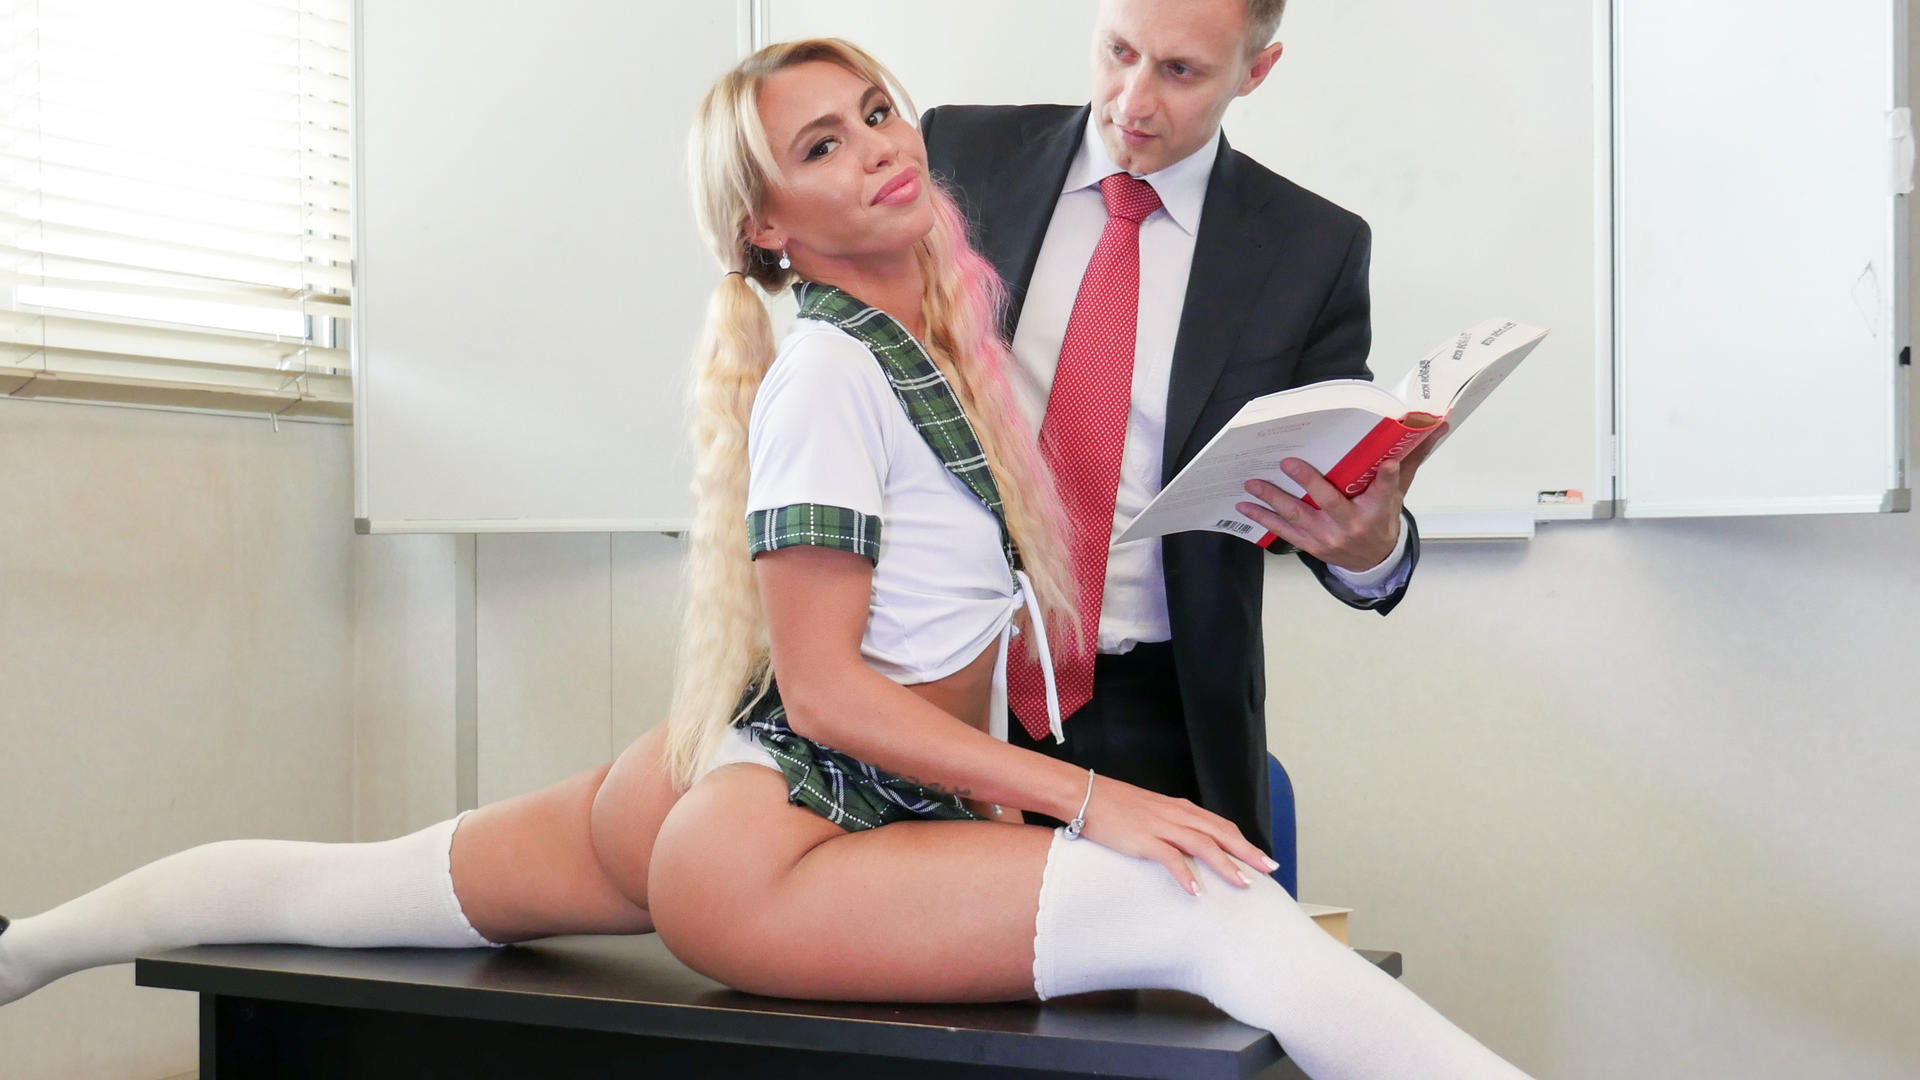 Naughty school girl Lana Sins gets passionately fucked and cum covered